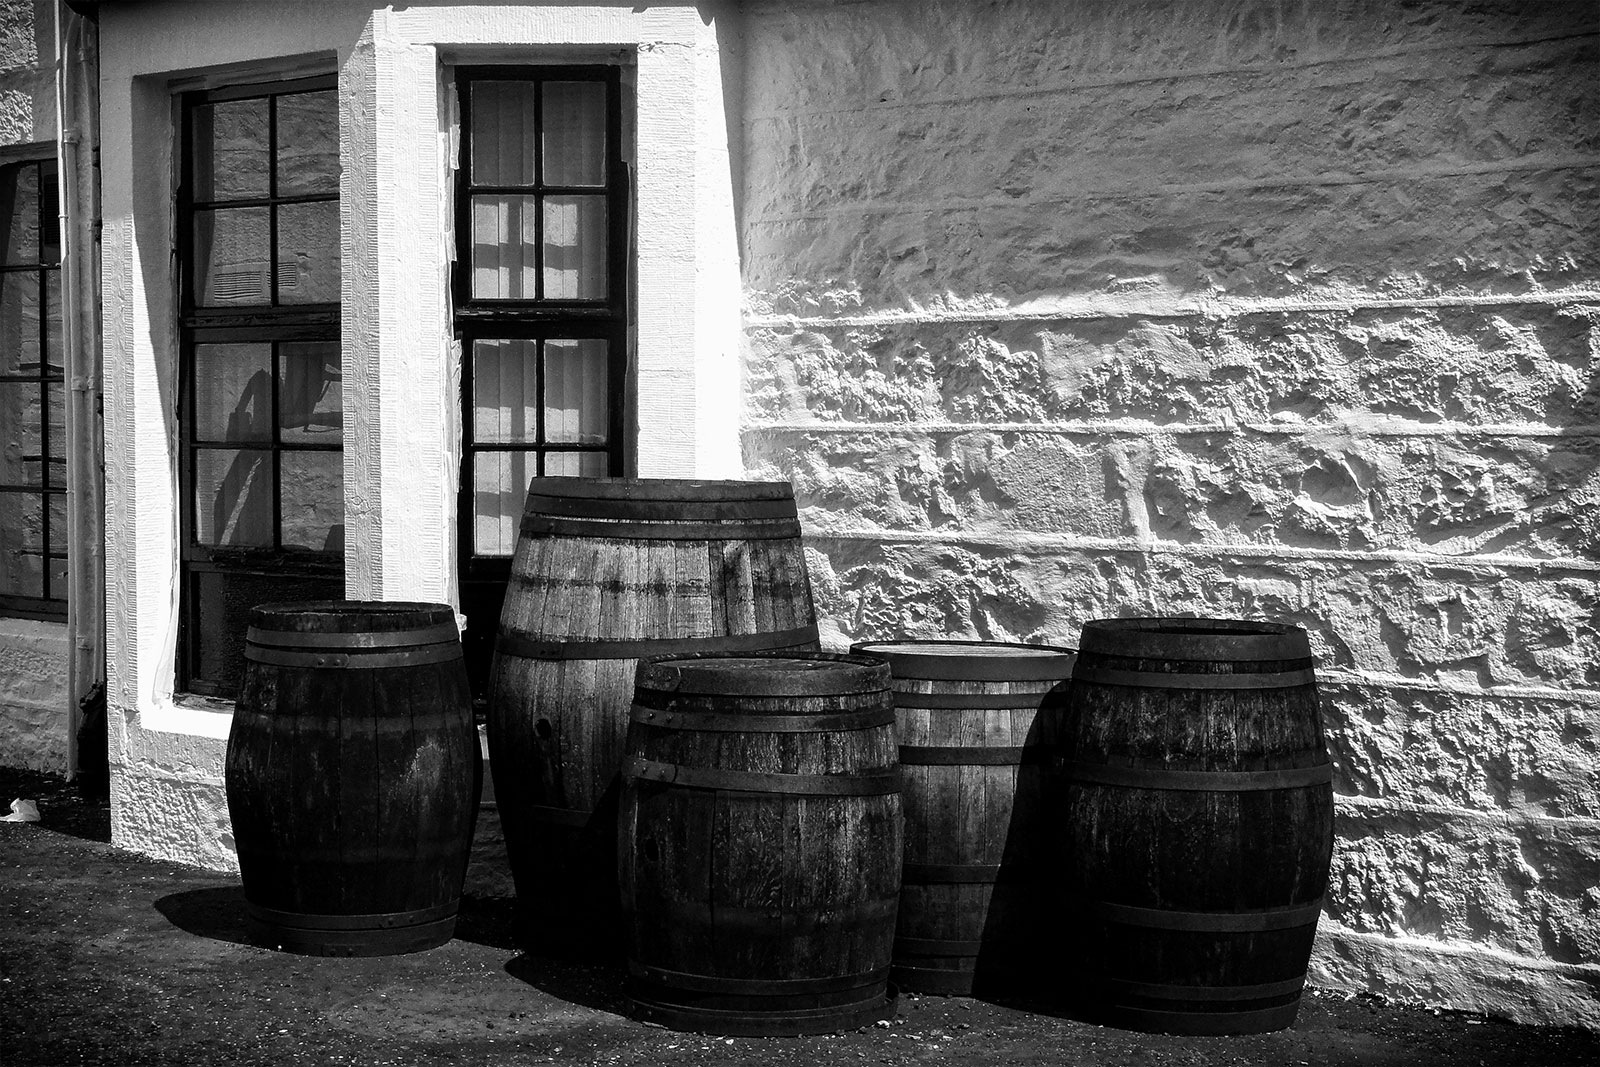 Casks by Lairds Photography